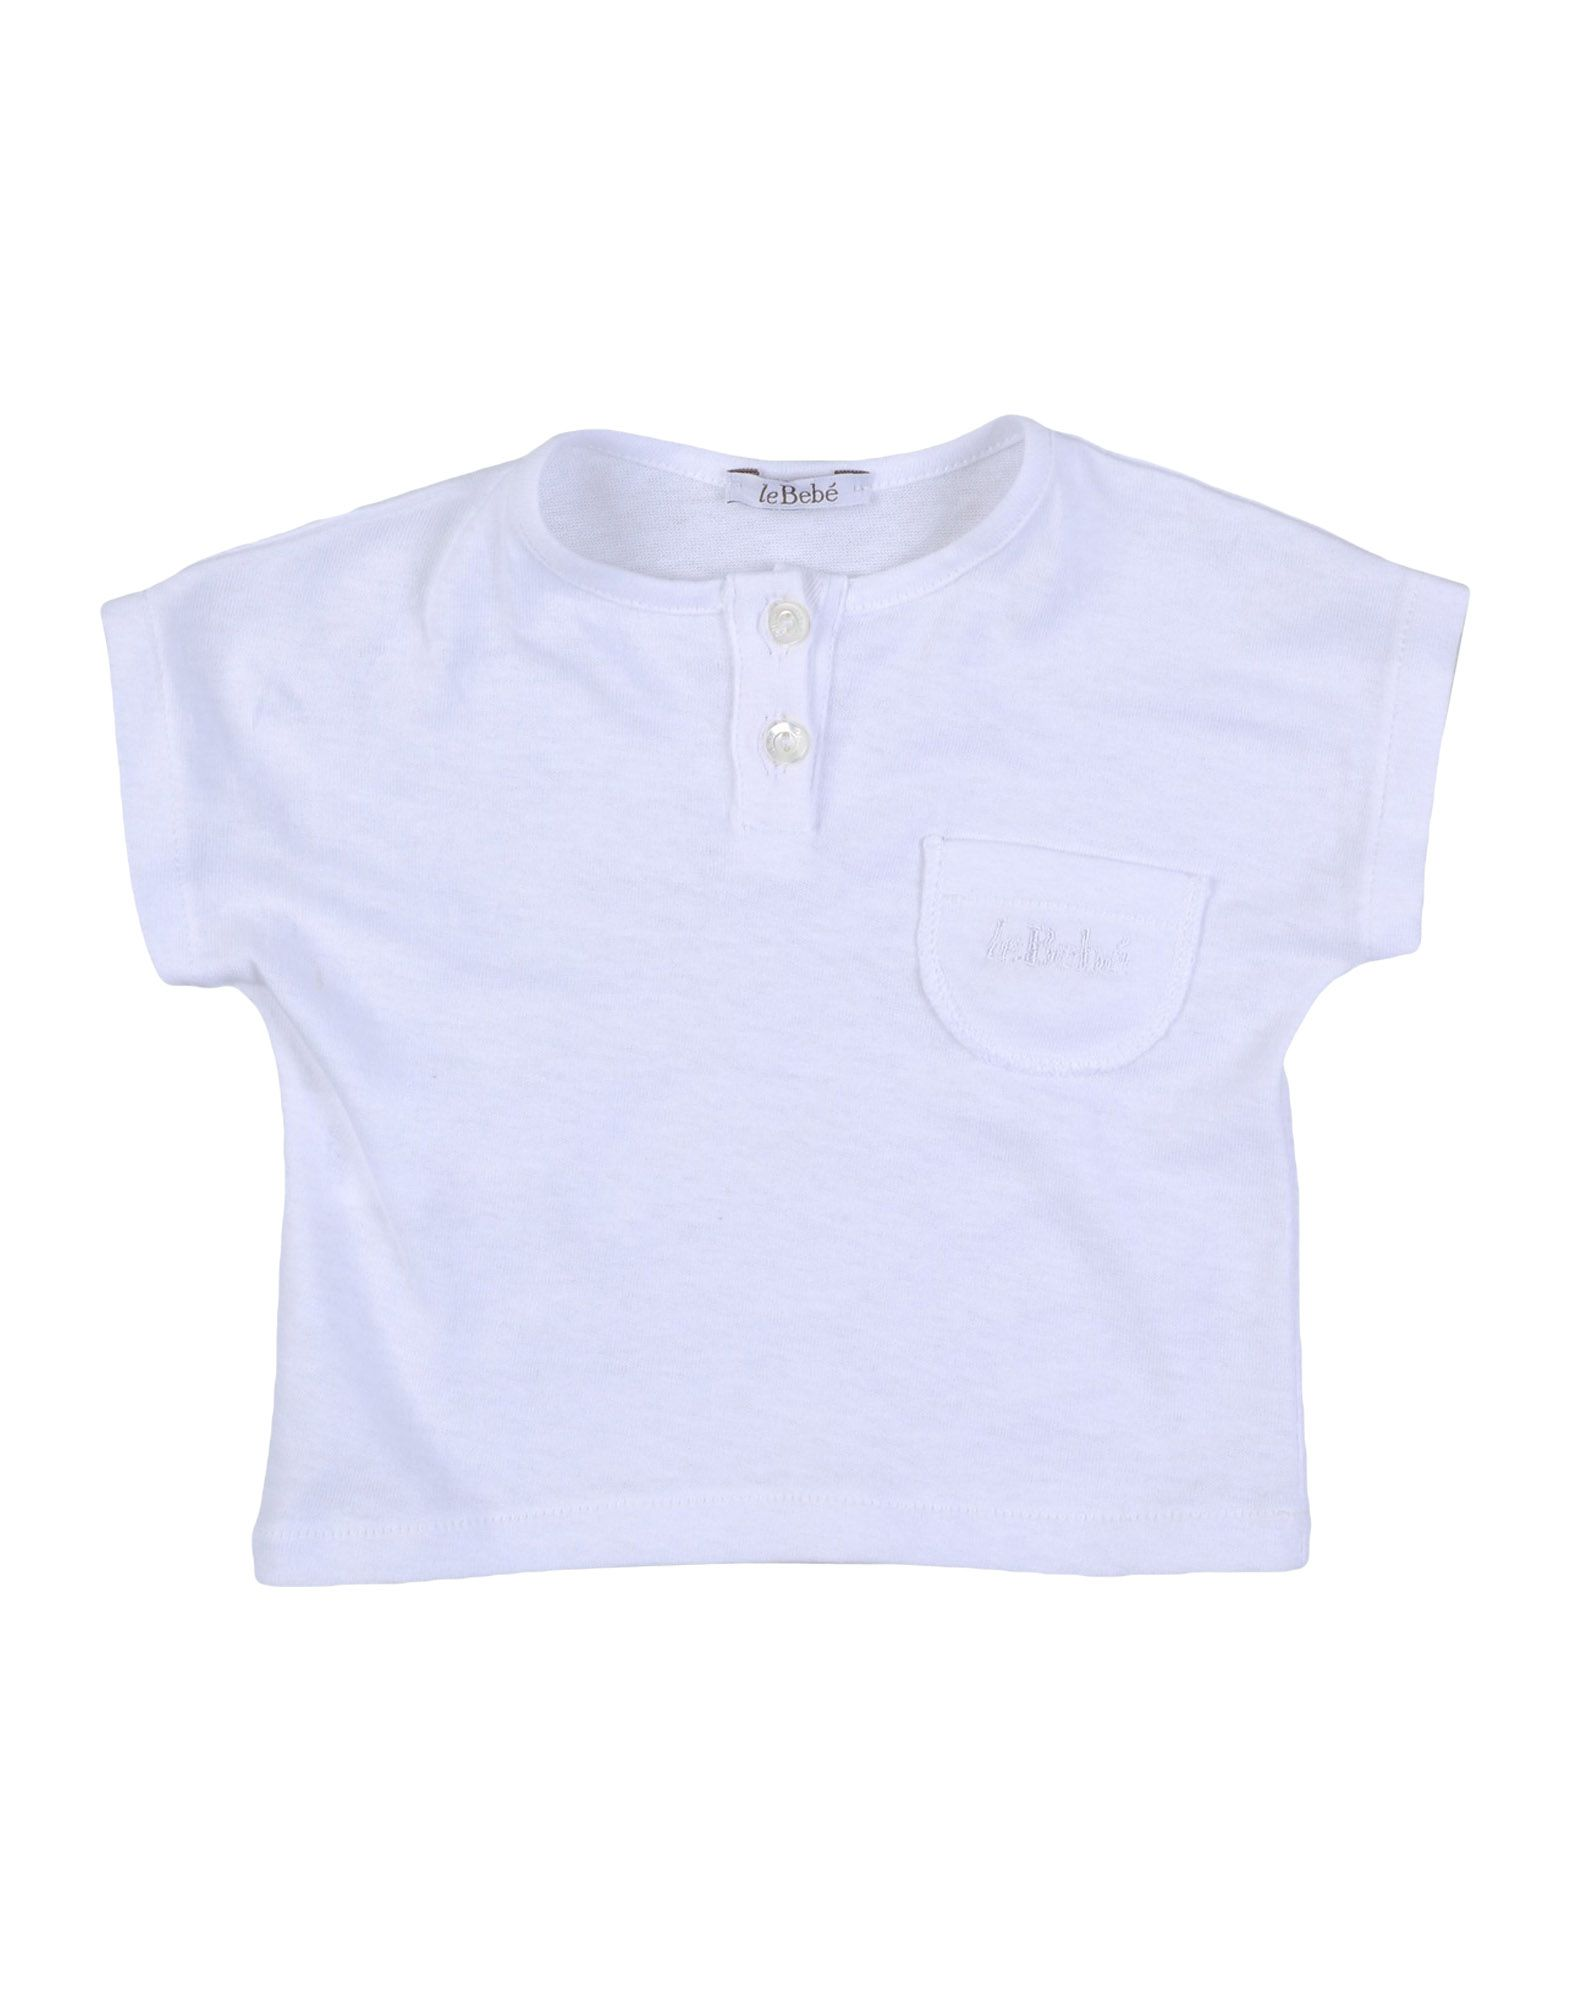 Le Bebé Kids' T-shirts In White